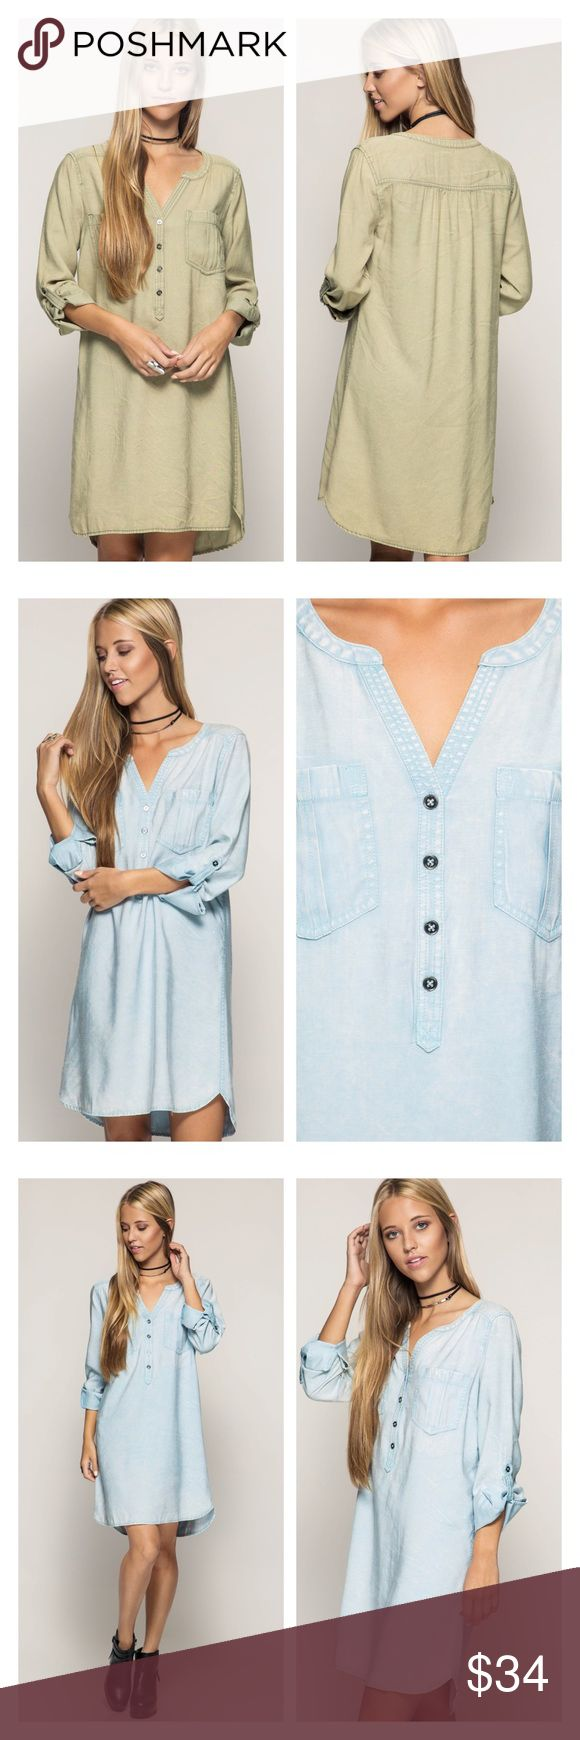 Roll up sleeve shift dress Roll up sleeve shift dress does not come with belt Dresses Long Sleeve